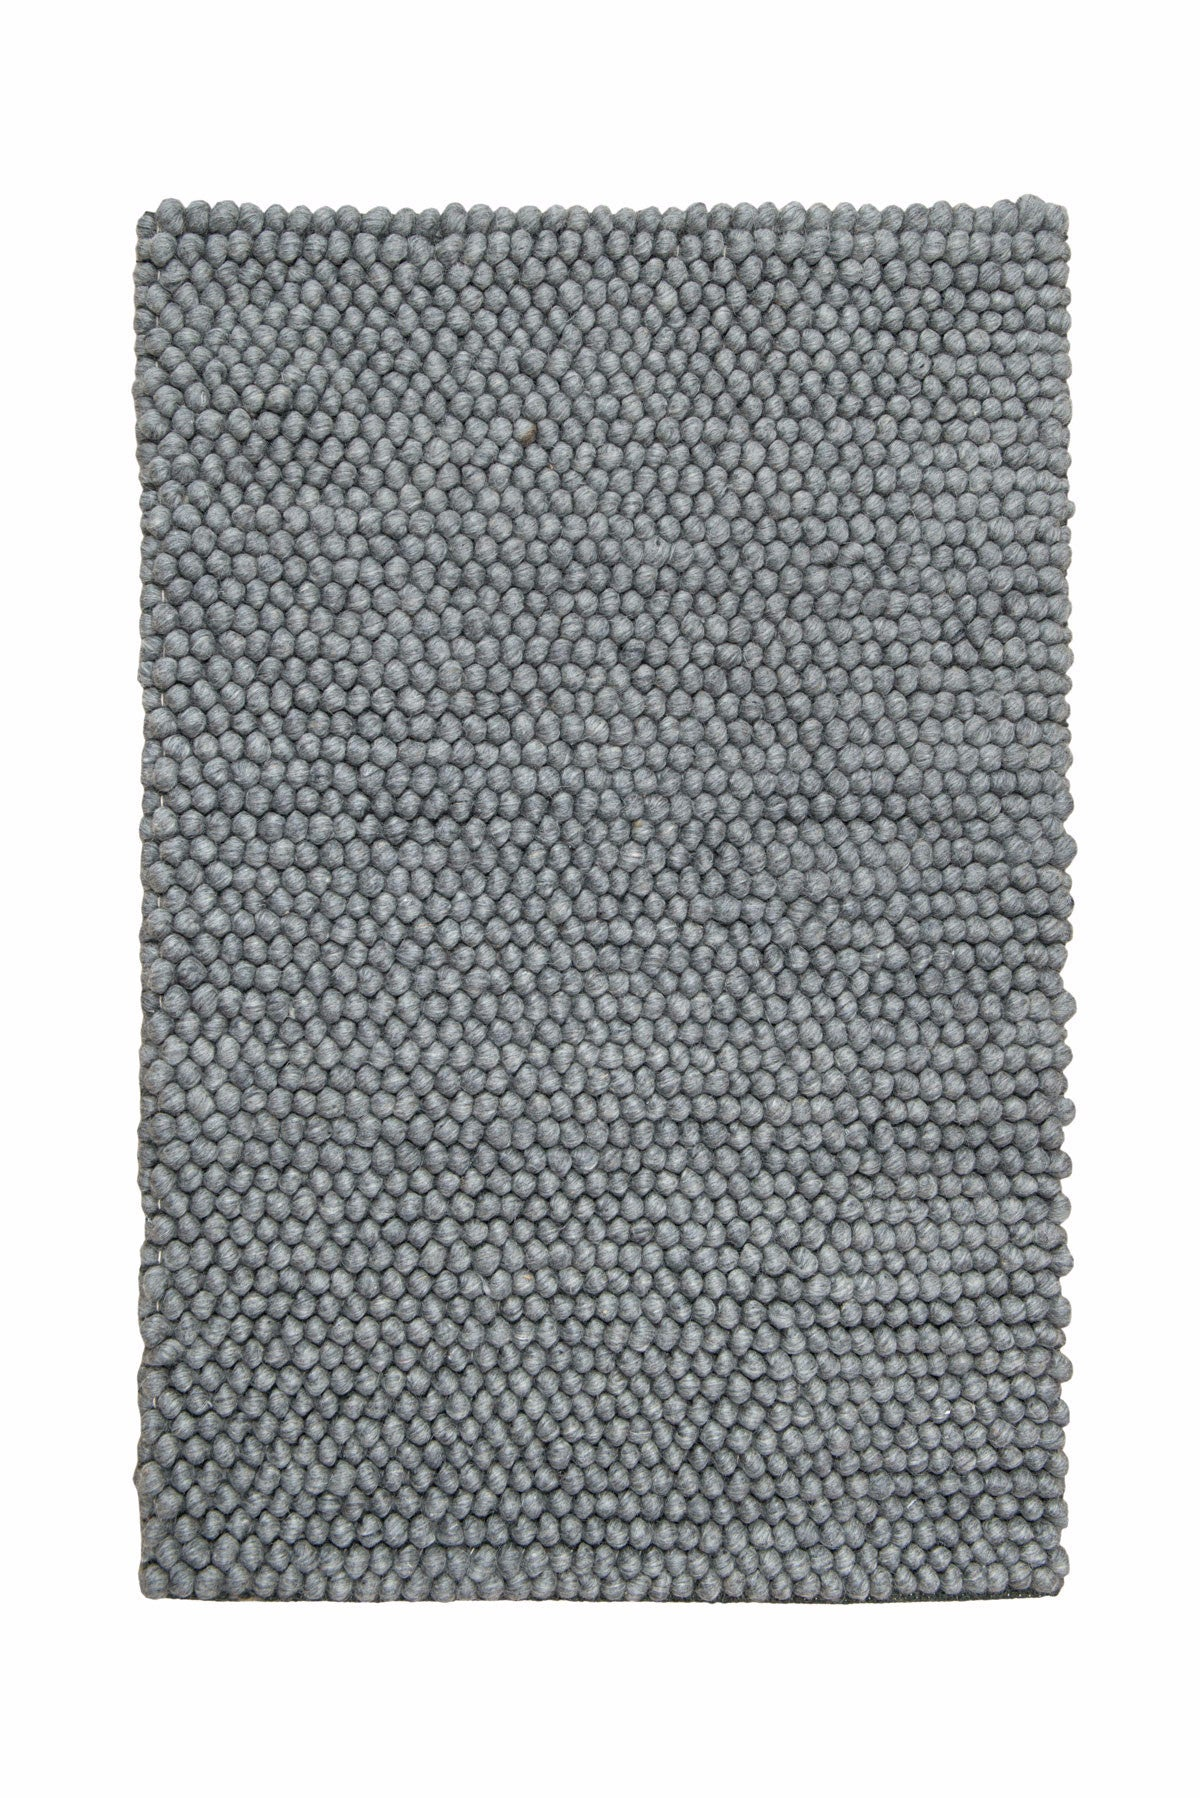 Eternity Wool Rug , Grey - greendecore.co.uk - 2